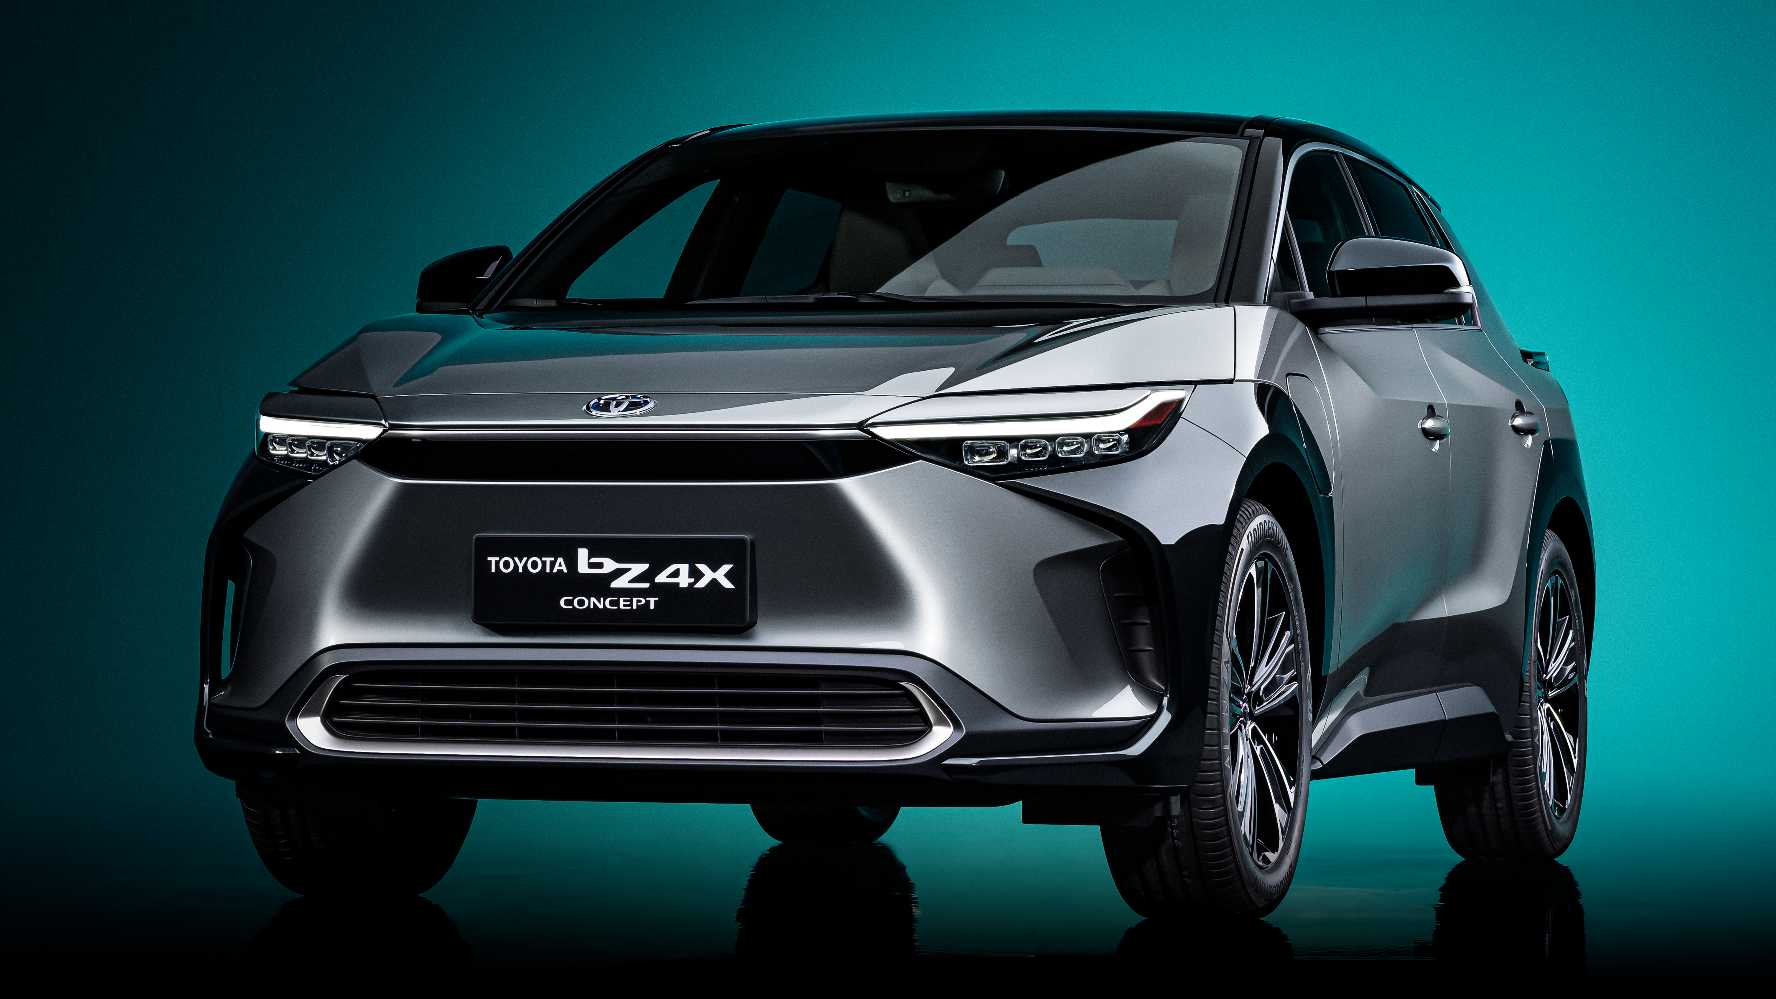 Toyota's first global BEV, the bZ4x SUV, will not be completed until 2022. Photo: Toyota